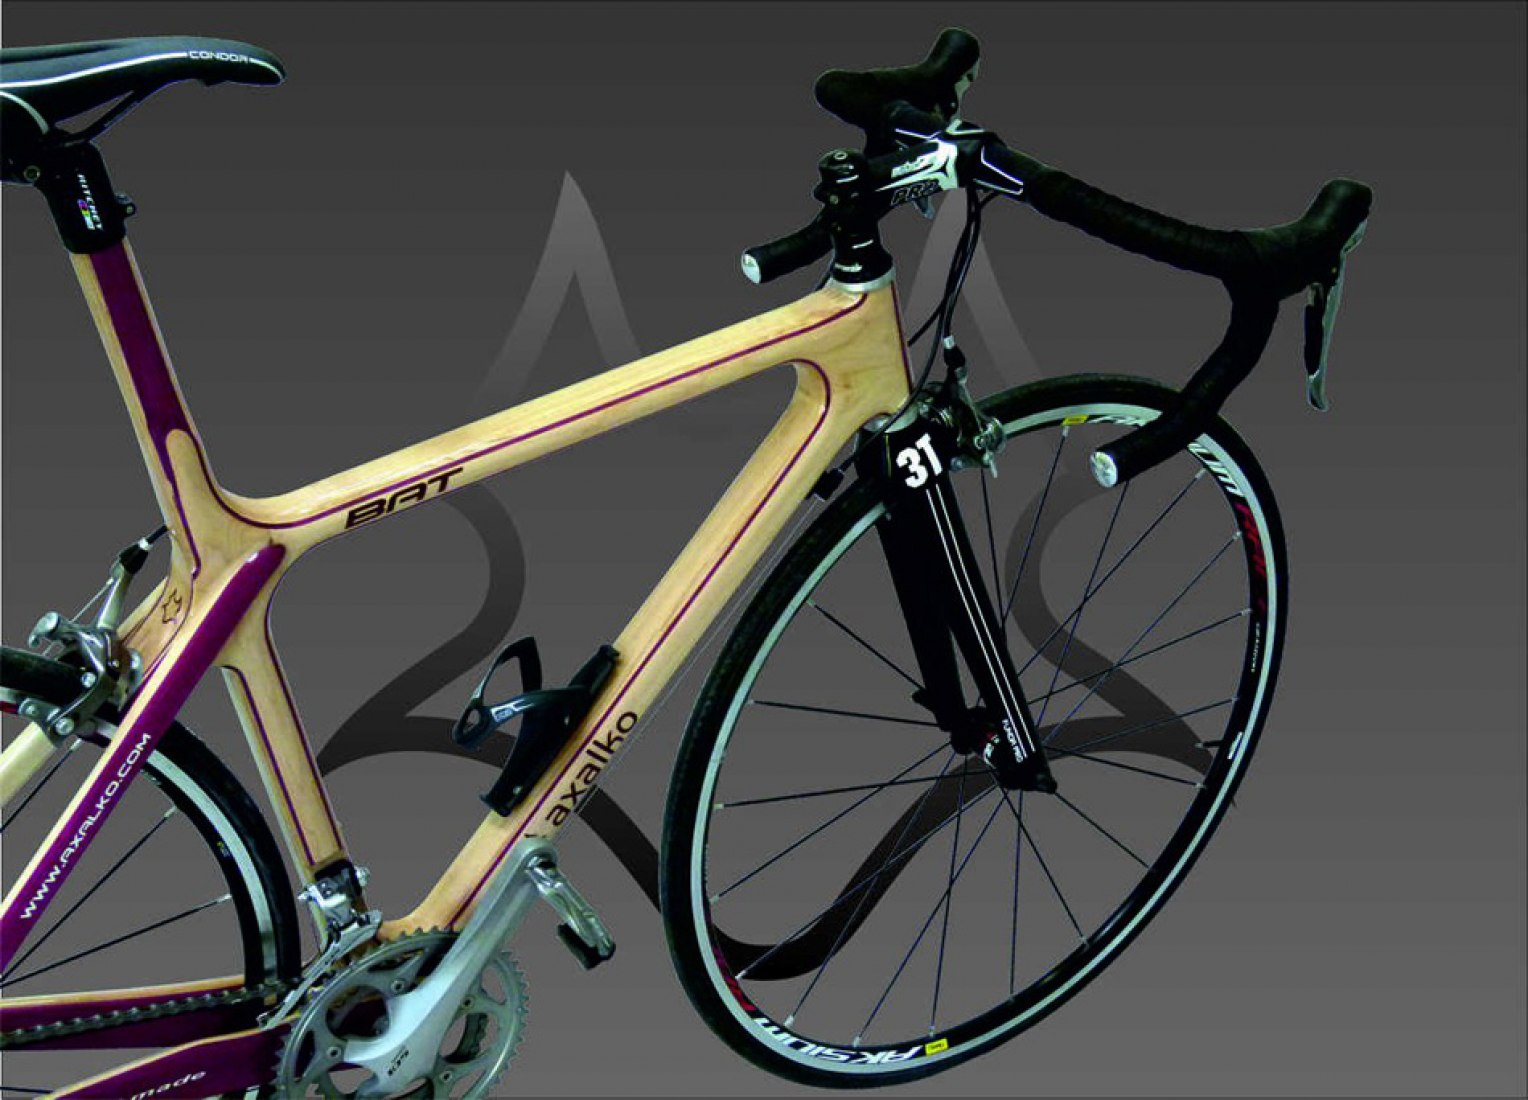 A frame of wood bicycle by Axalko.